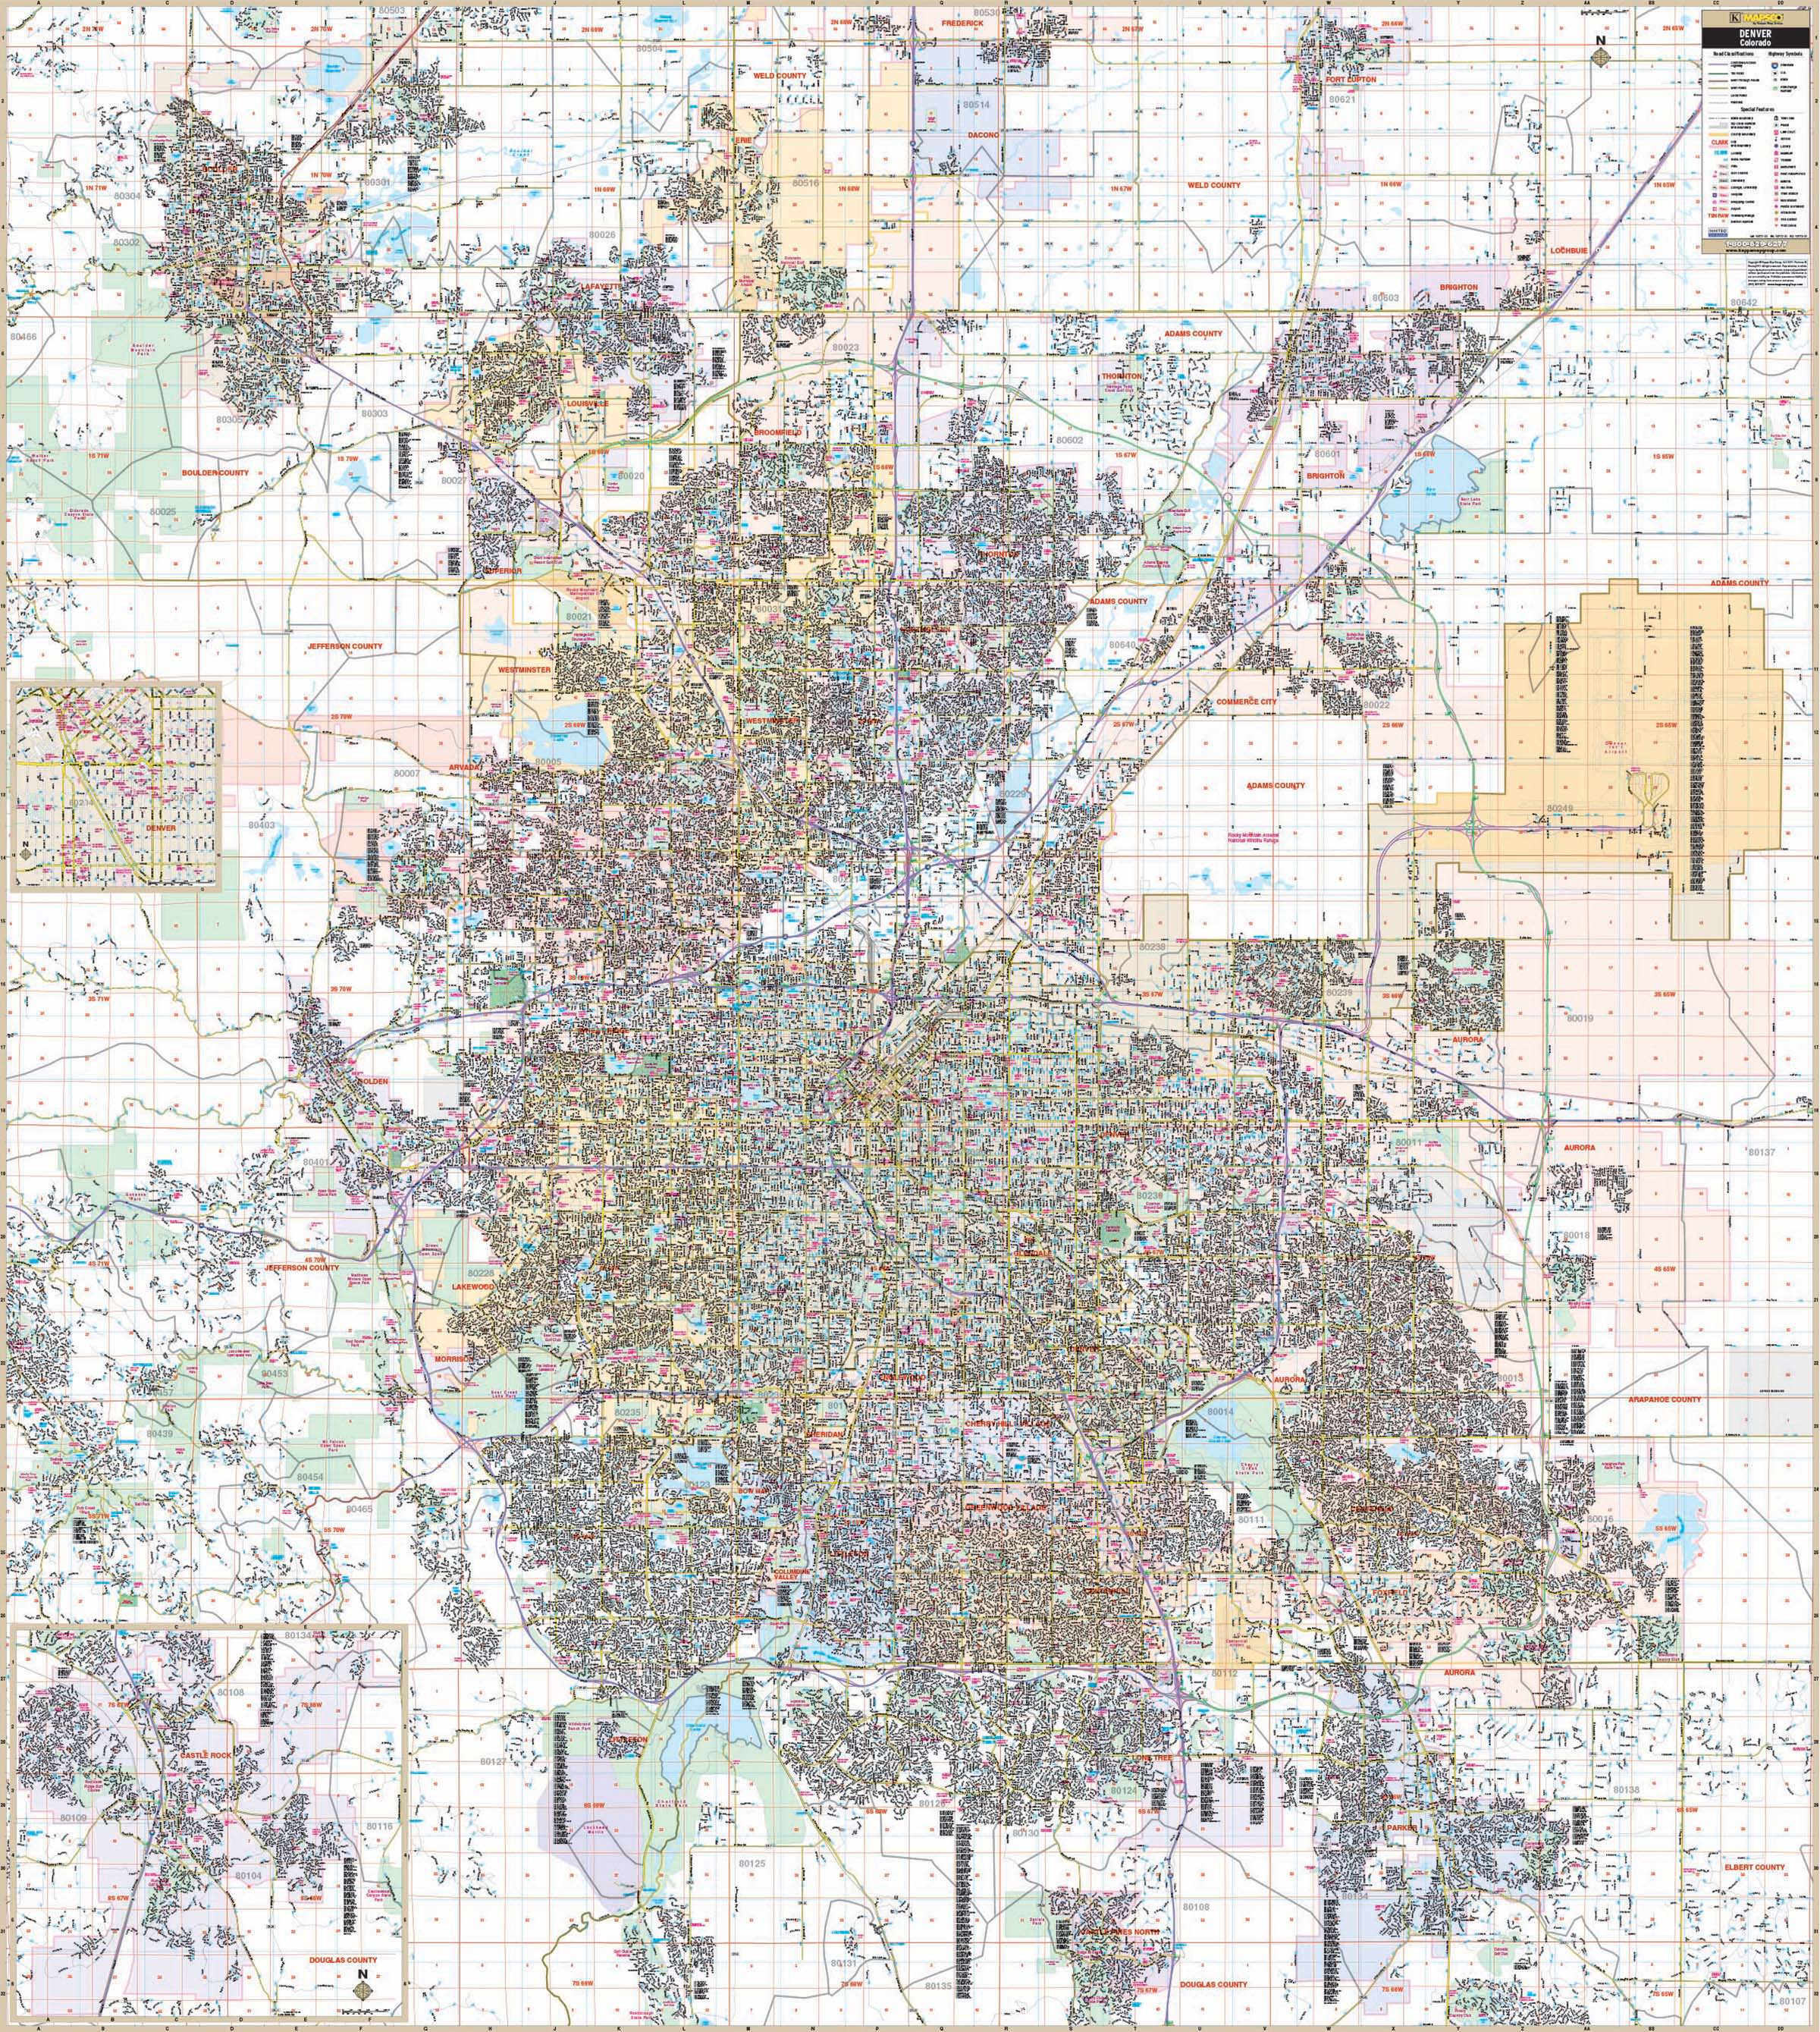 Denver, CO Metro Area Wall Map – KAPPA MAP GROUP